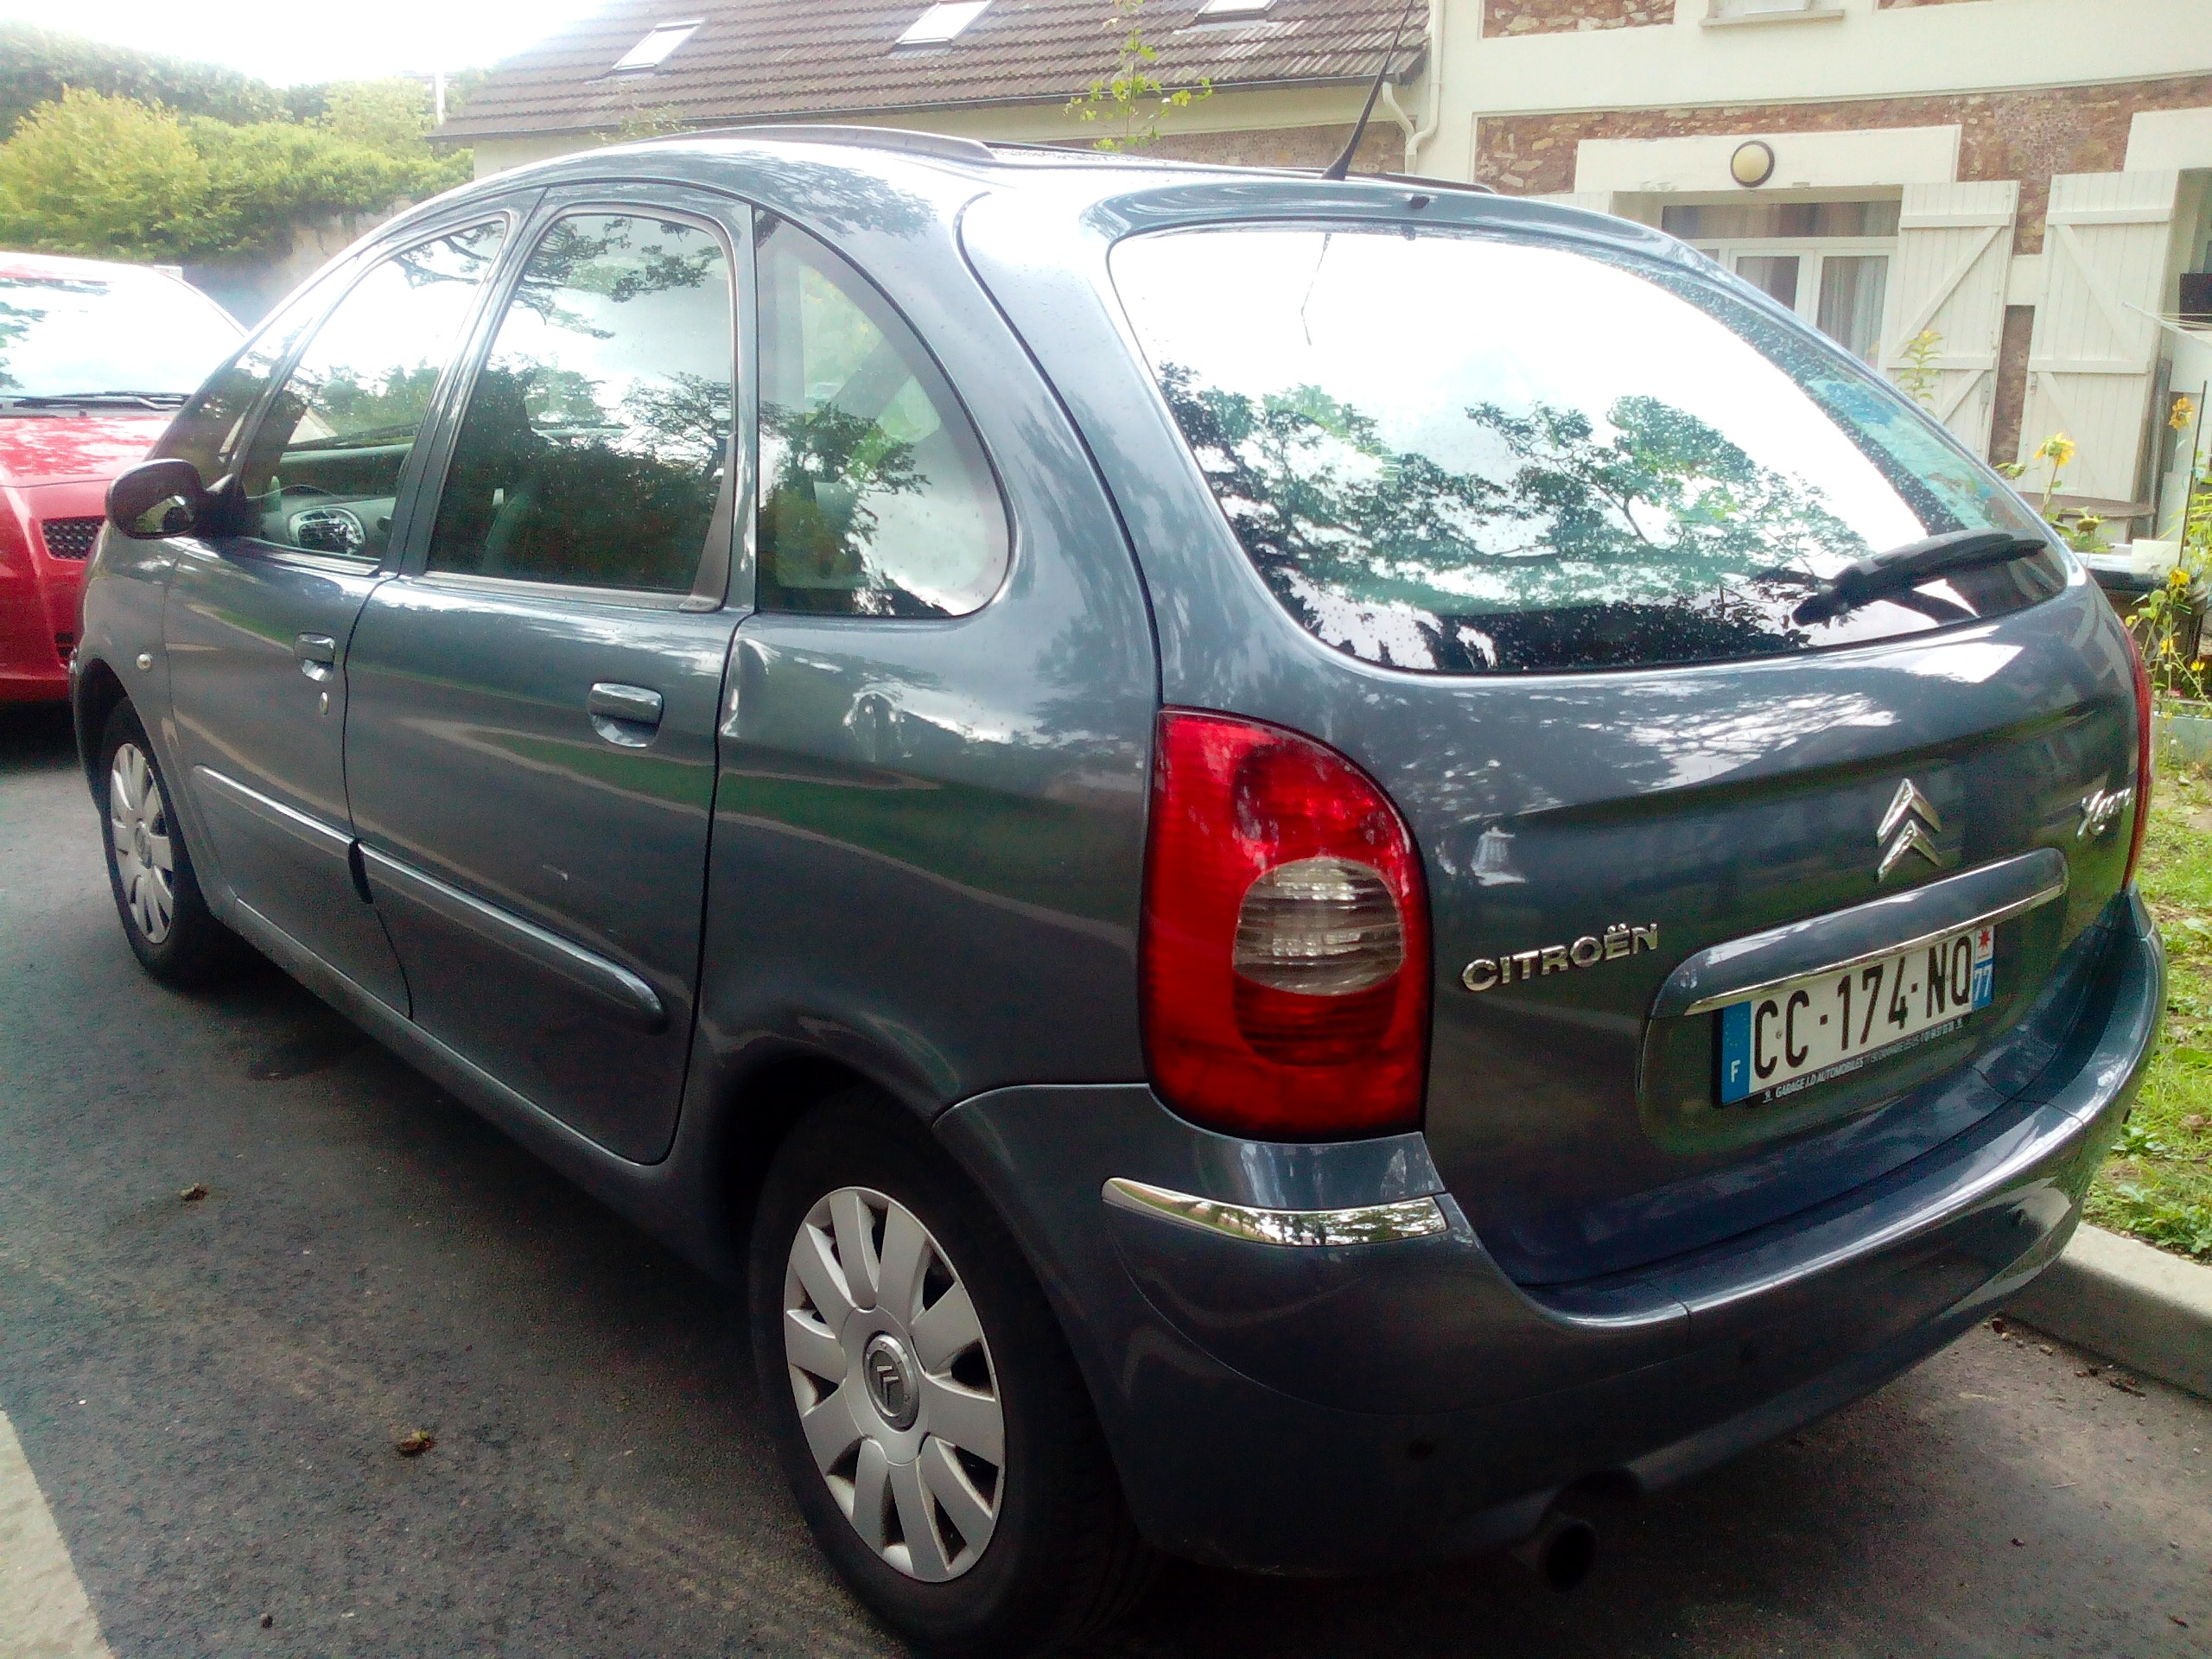 CITROEN Xsara Picasso HDI 110 Collection, 2005, Diesel